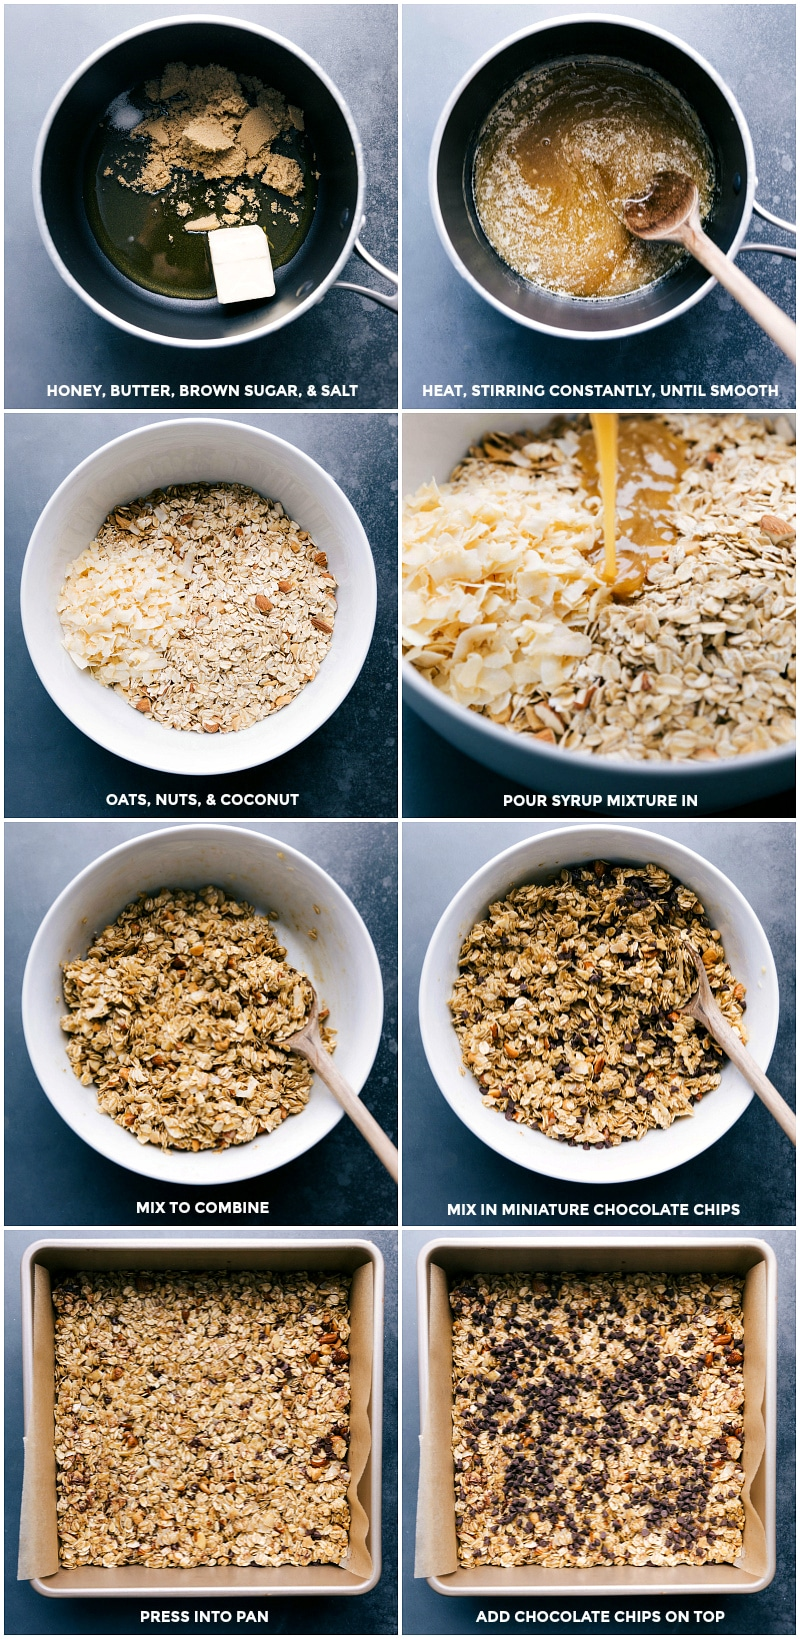 Process shots of making Homemade Granola Bars: melt honey, butter, brown sugar and salt; heat and stir until smooth; combine oats, nuts and coconut; pour syrup mixture in; combine and mix in chocolate chips; press into pan; add chocolate chips on top.